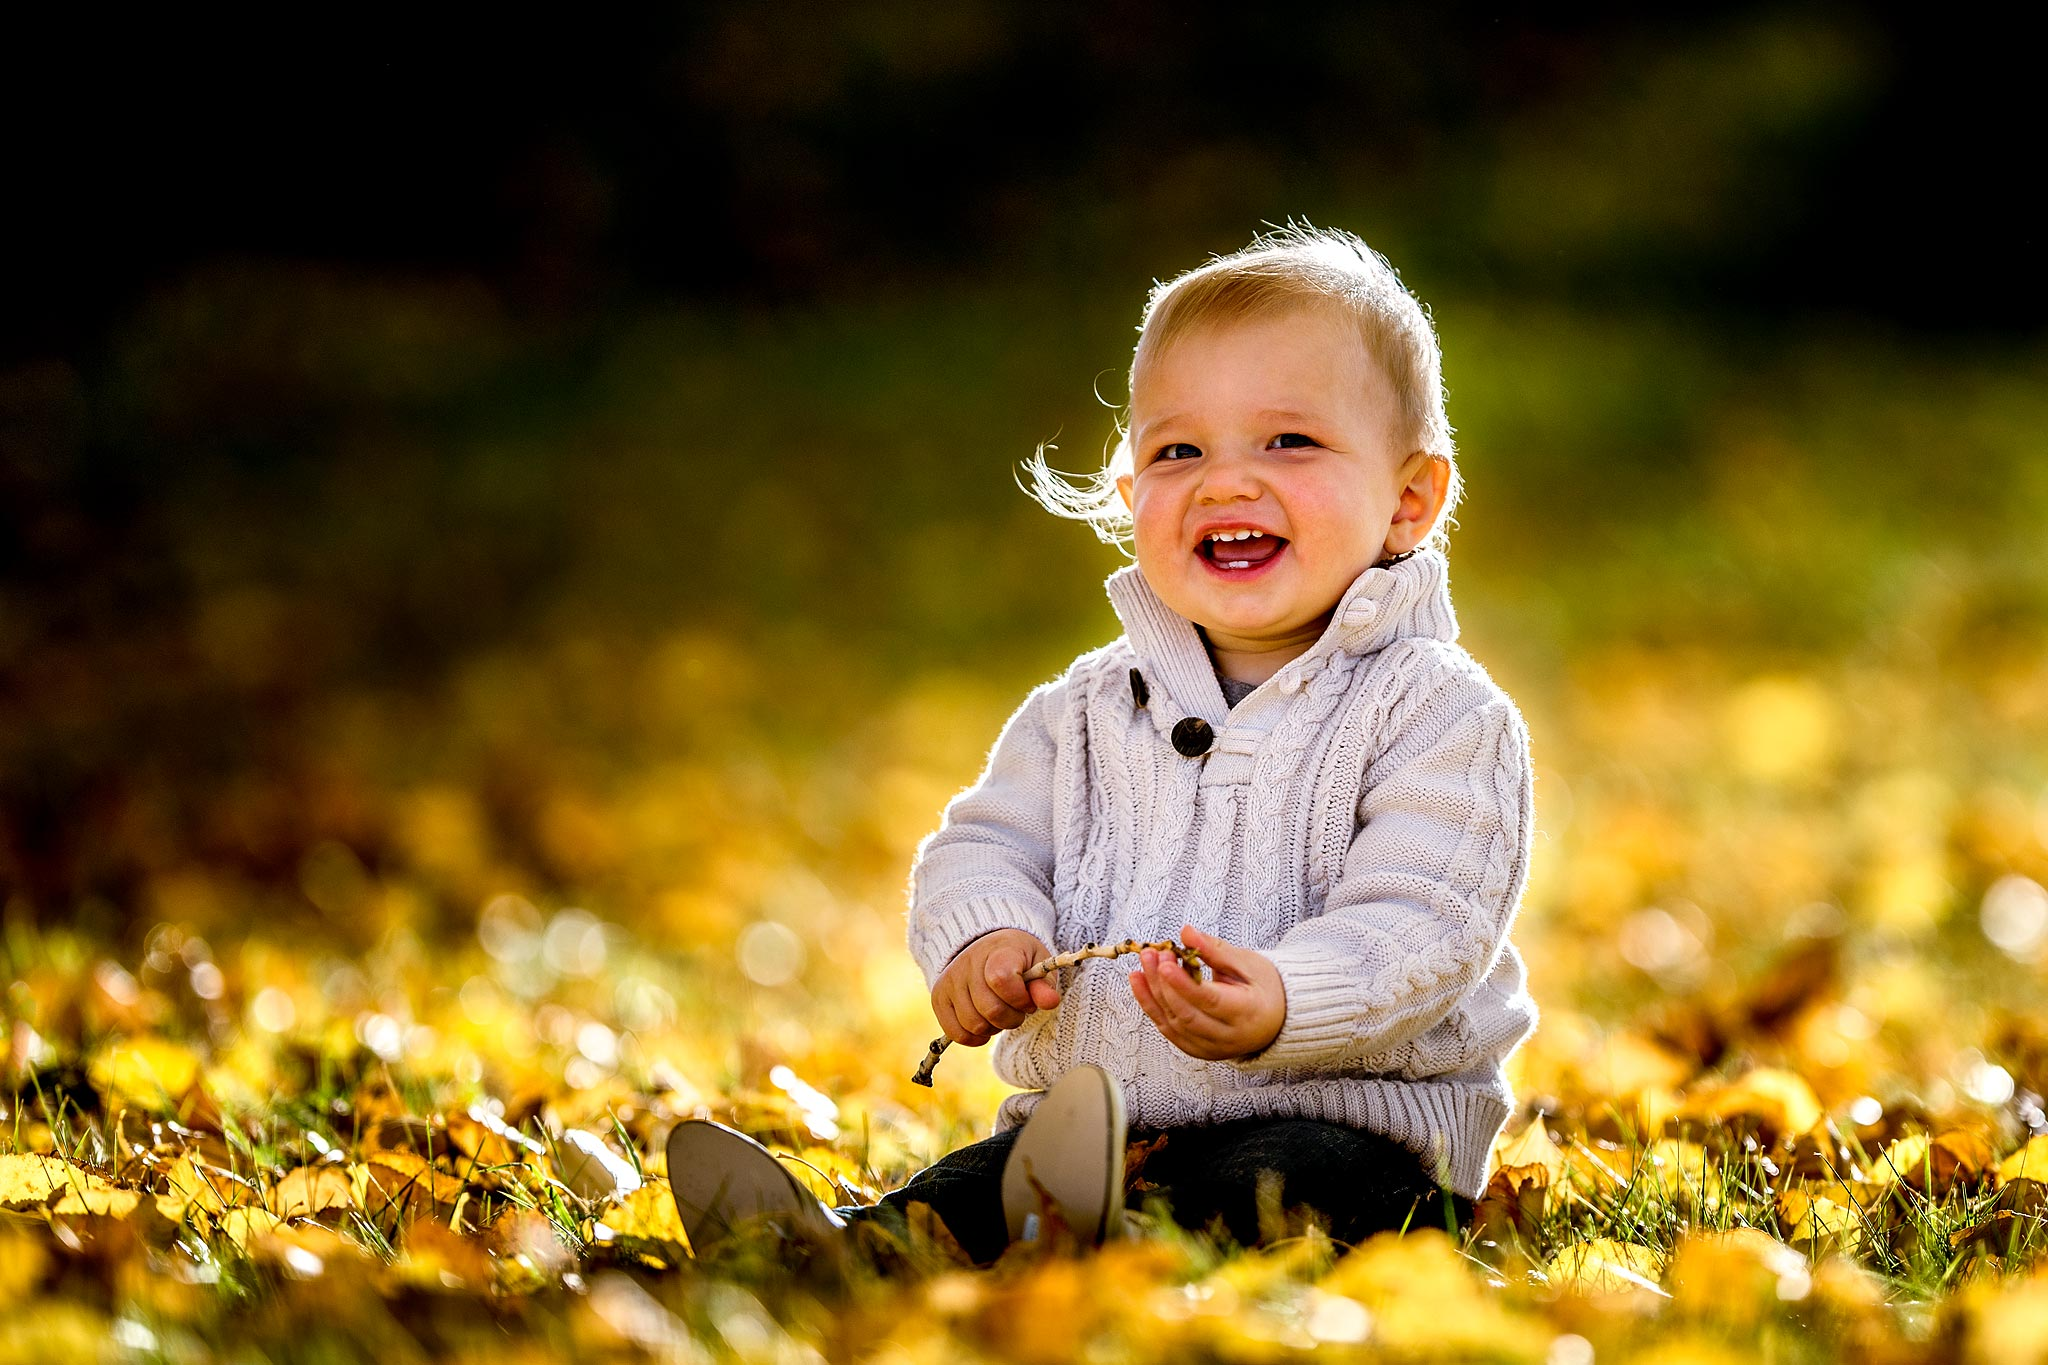 young boy sitting on the grass laughing and holding a stick